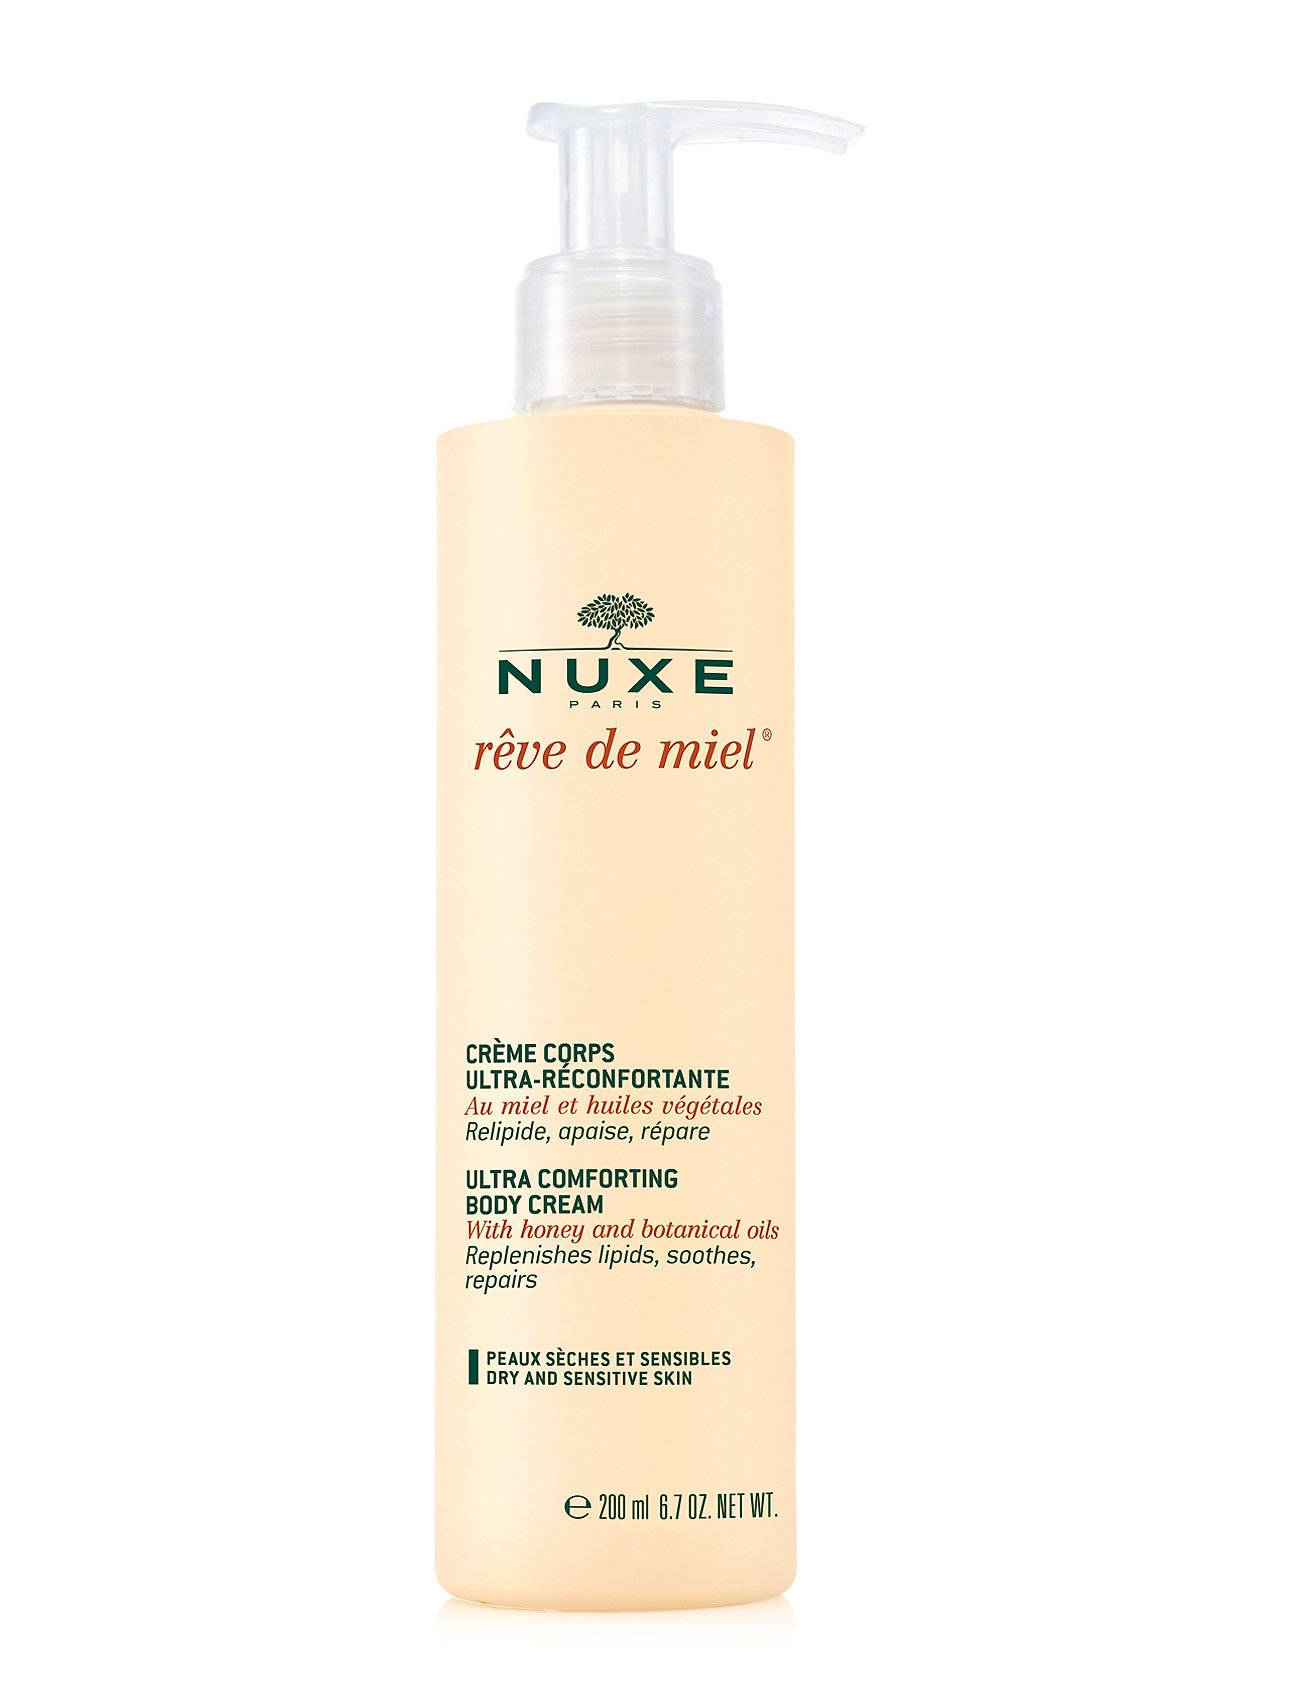 NUXE Creme Corps Ultra-Reconfortante Beauty WOMEN Skin Care Body Body Lotion Nude NUXE